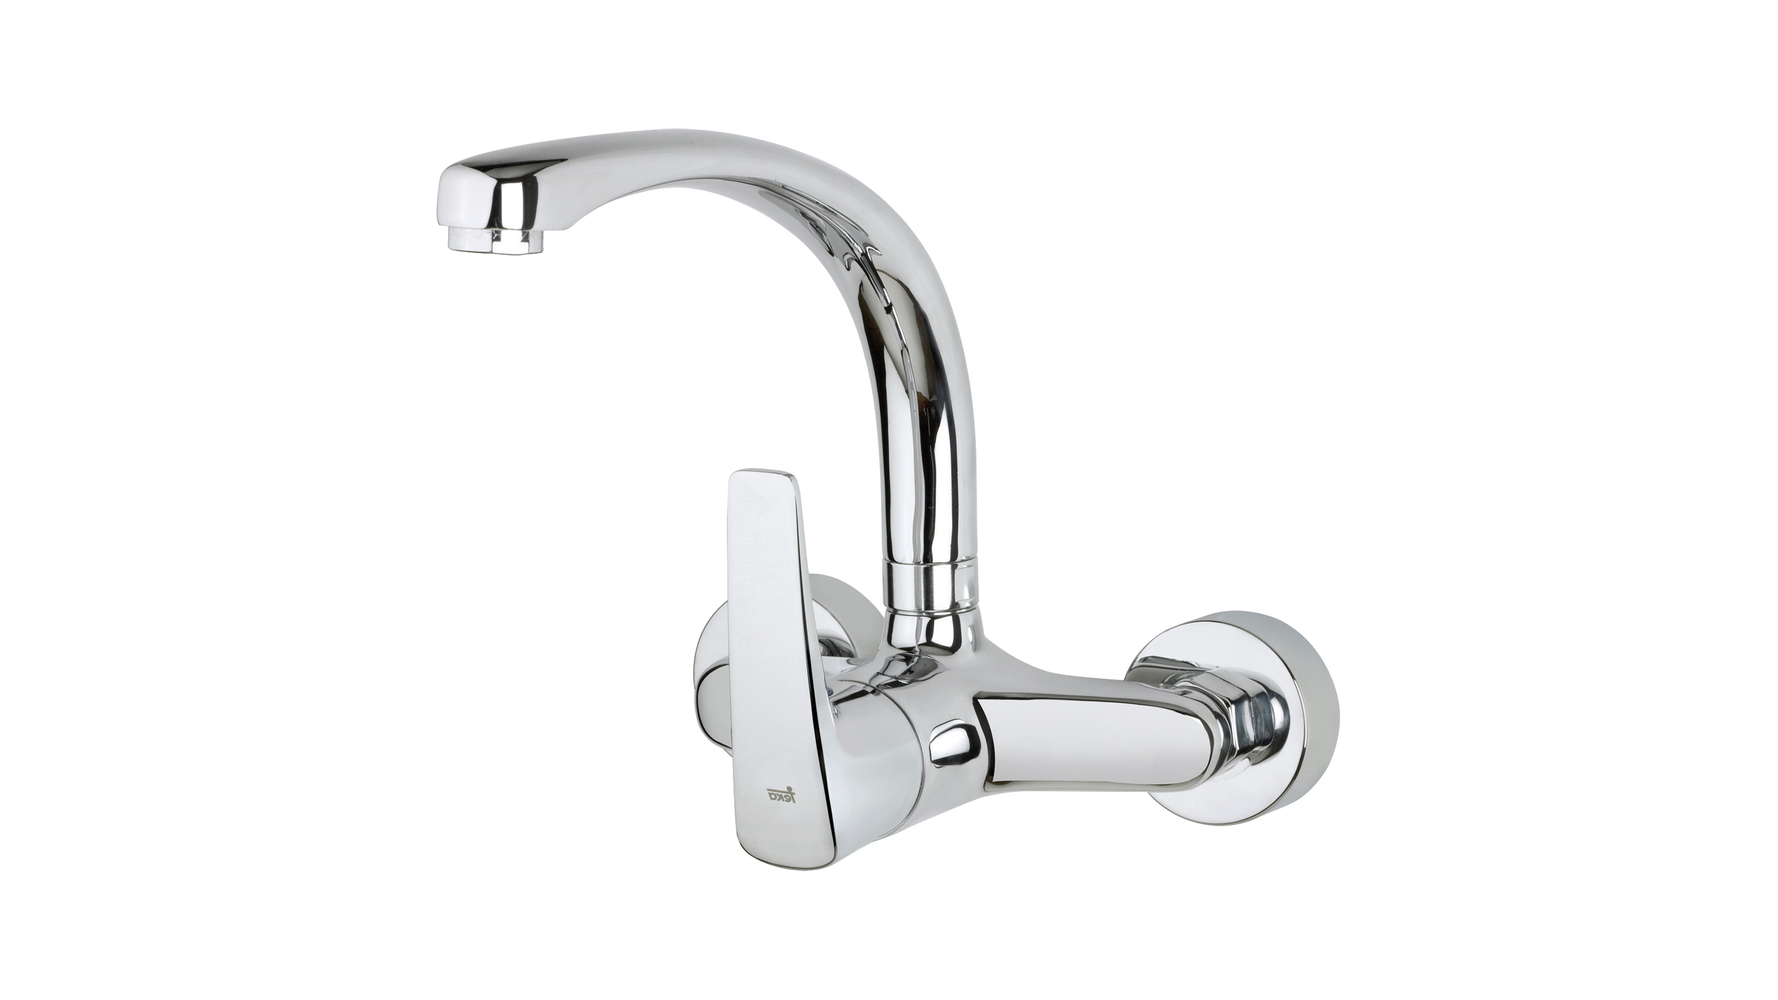 Wall-mounted single handle kitchen tap with cast swivel spout